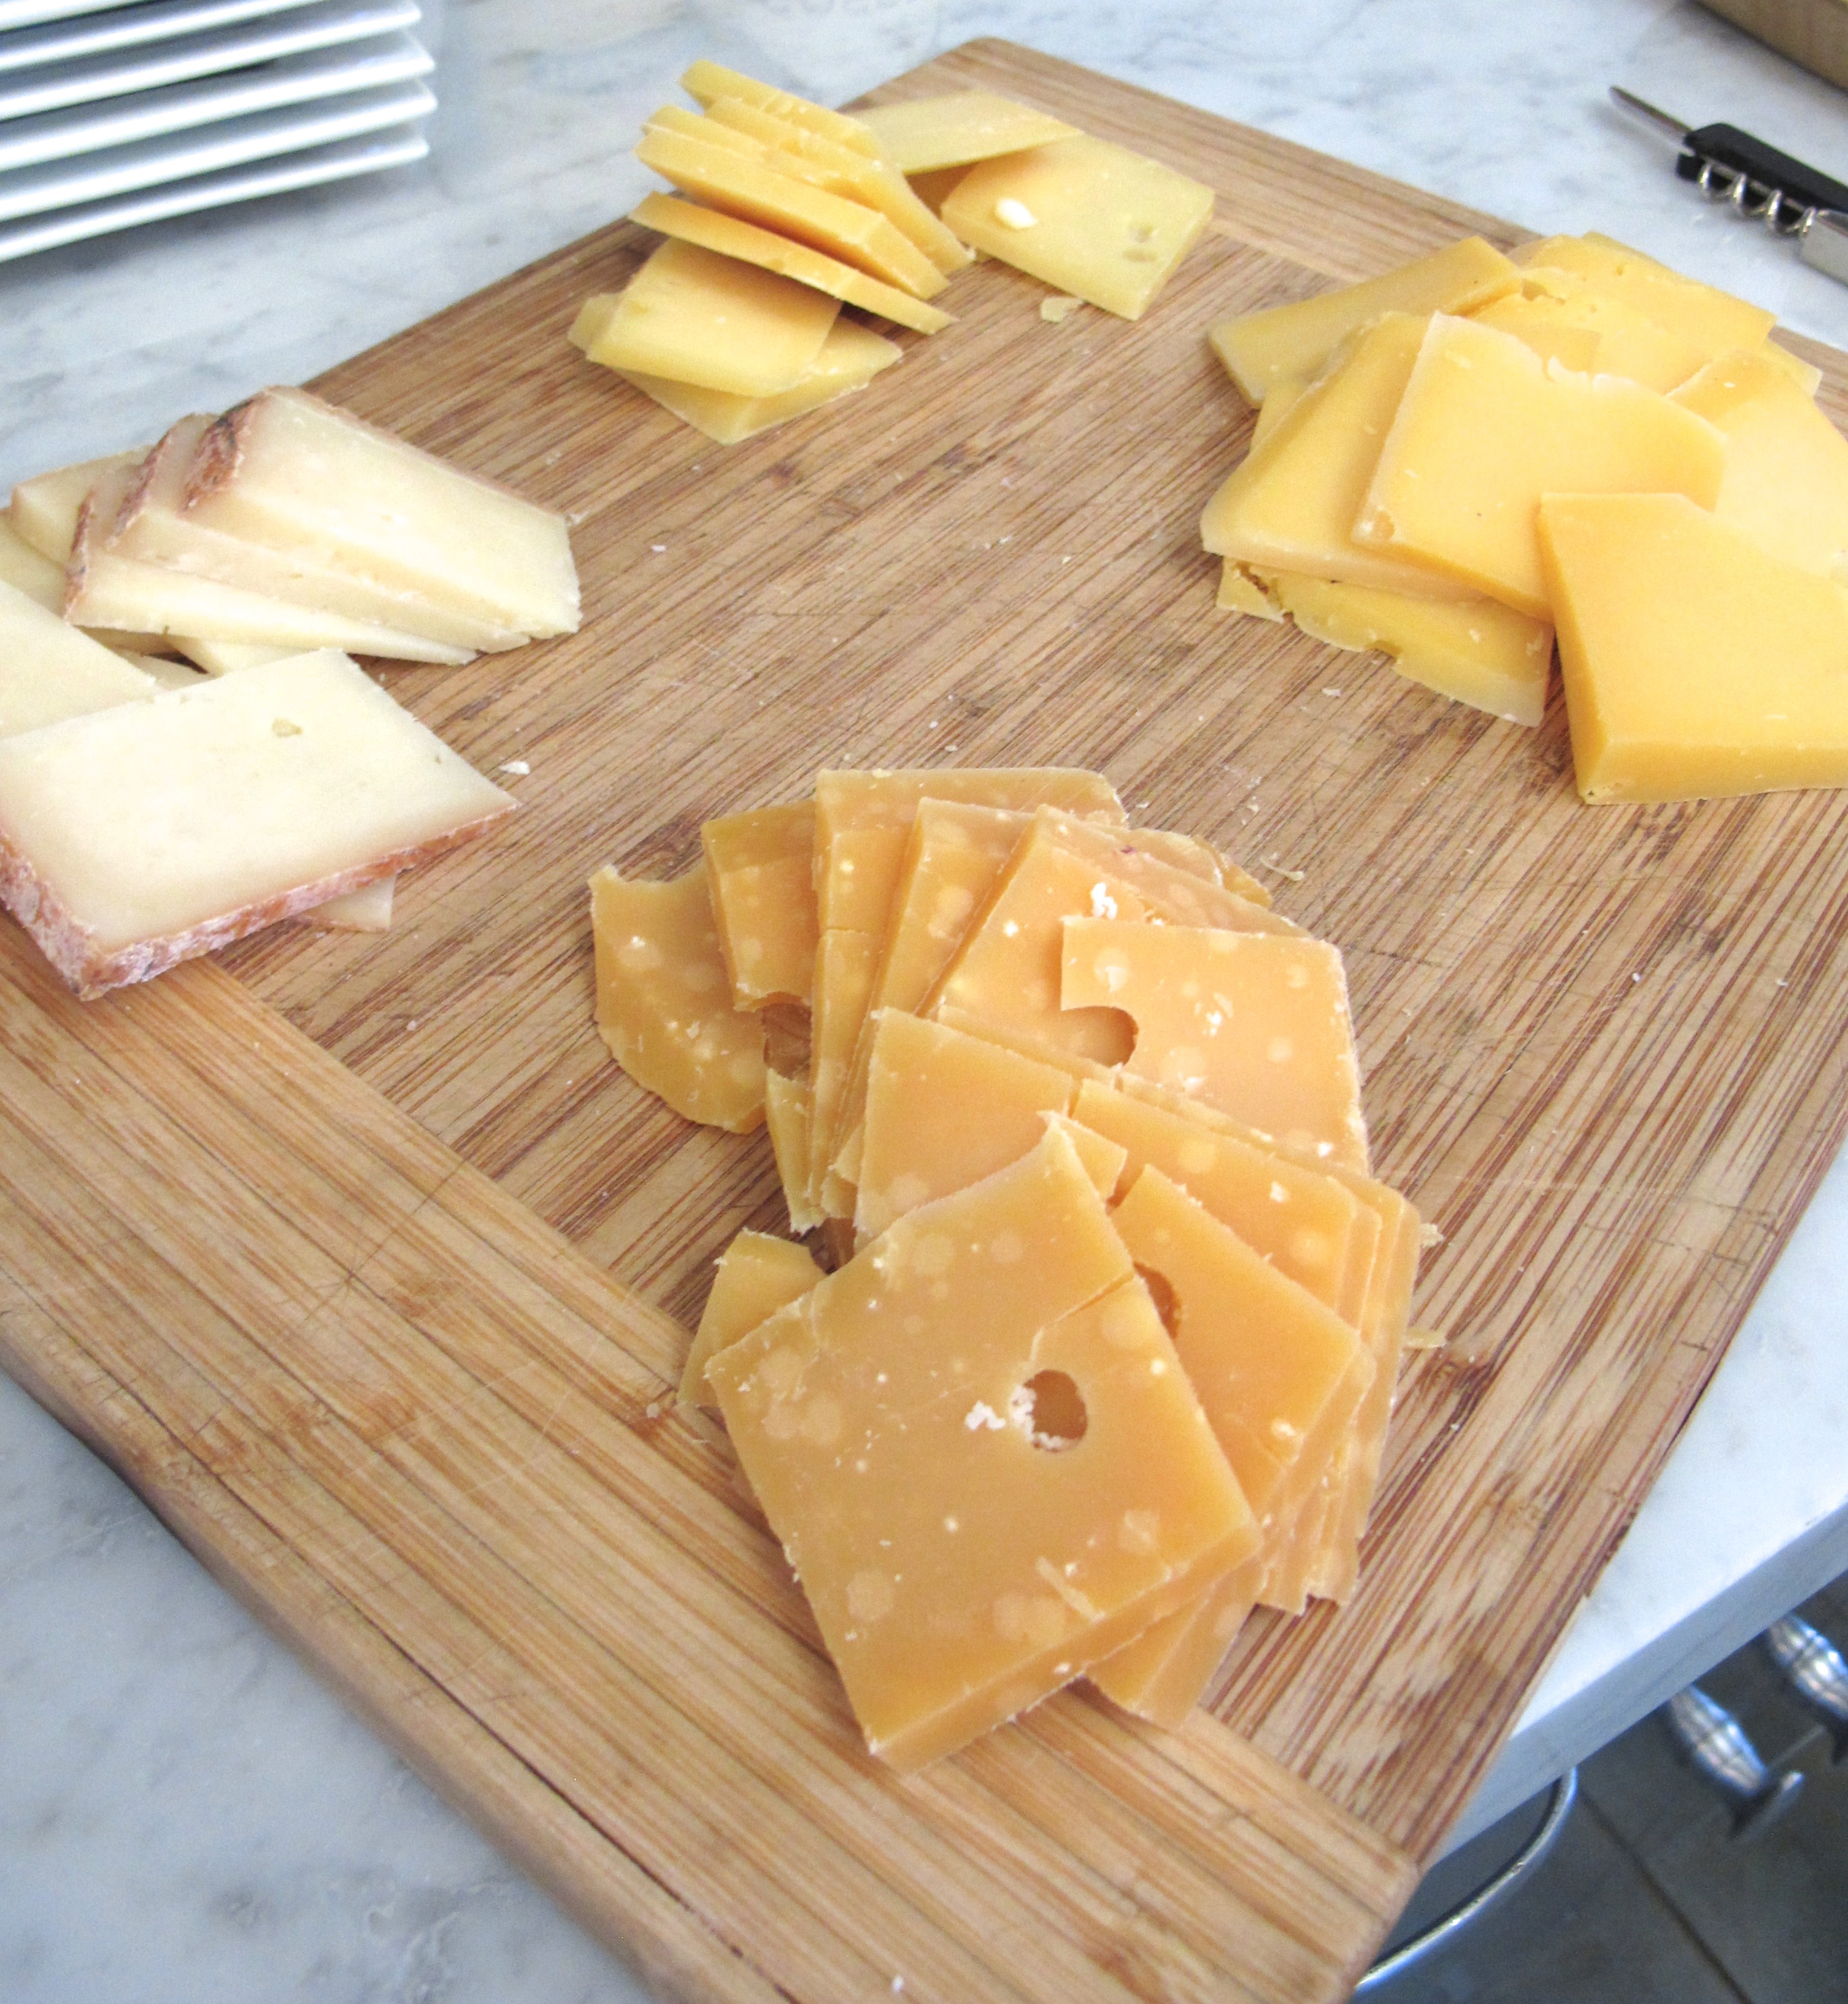 The lightest cheese is the local goat just a few months old, then there's a 6 month aged gouda in the back, a 2 year, and 5 year in front looking all nutty and nice